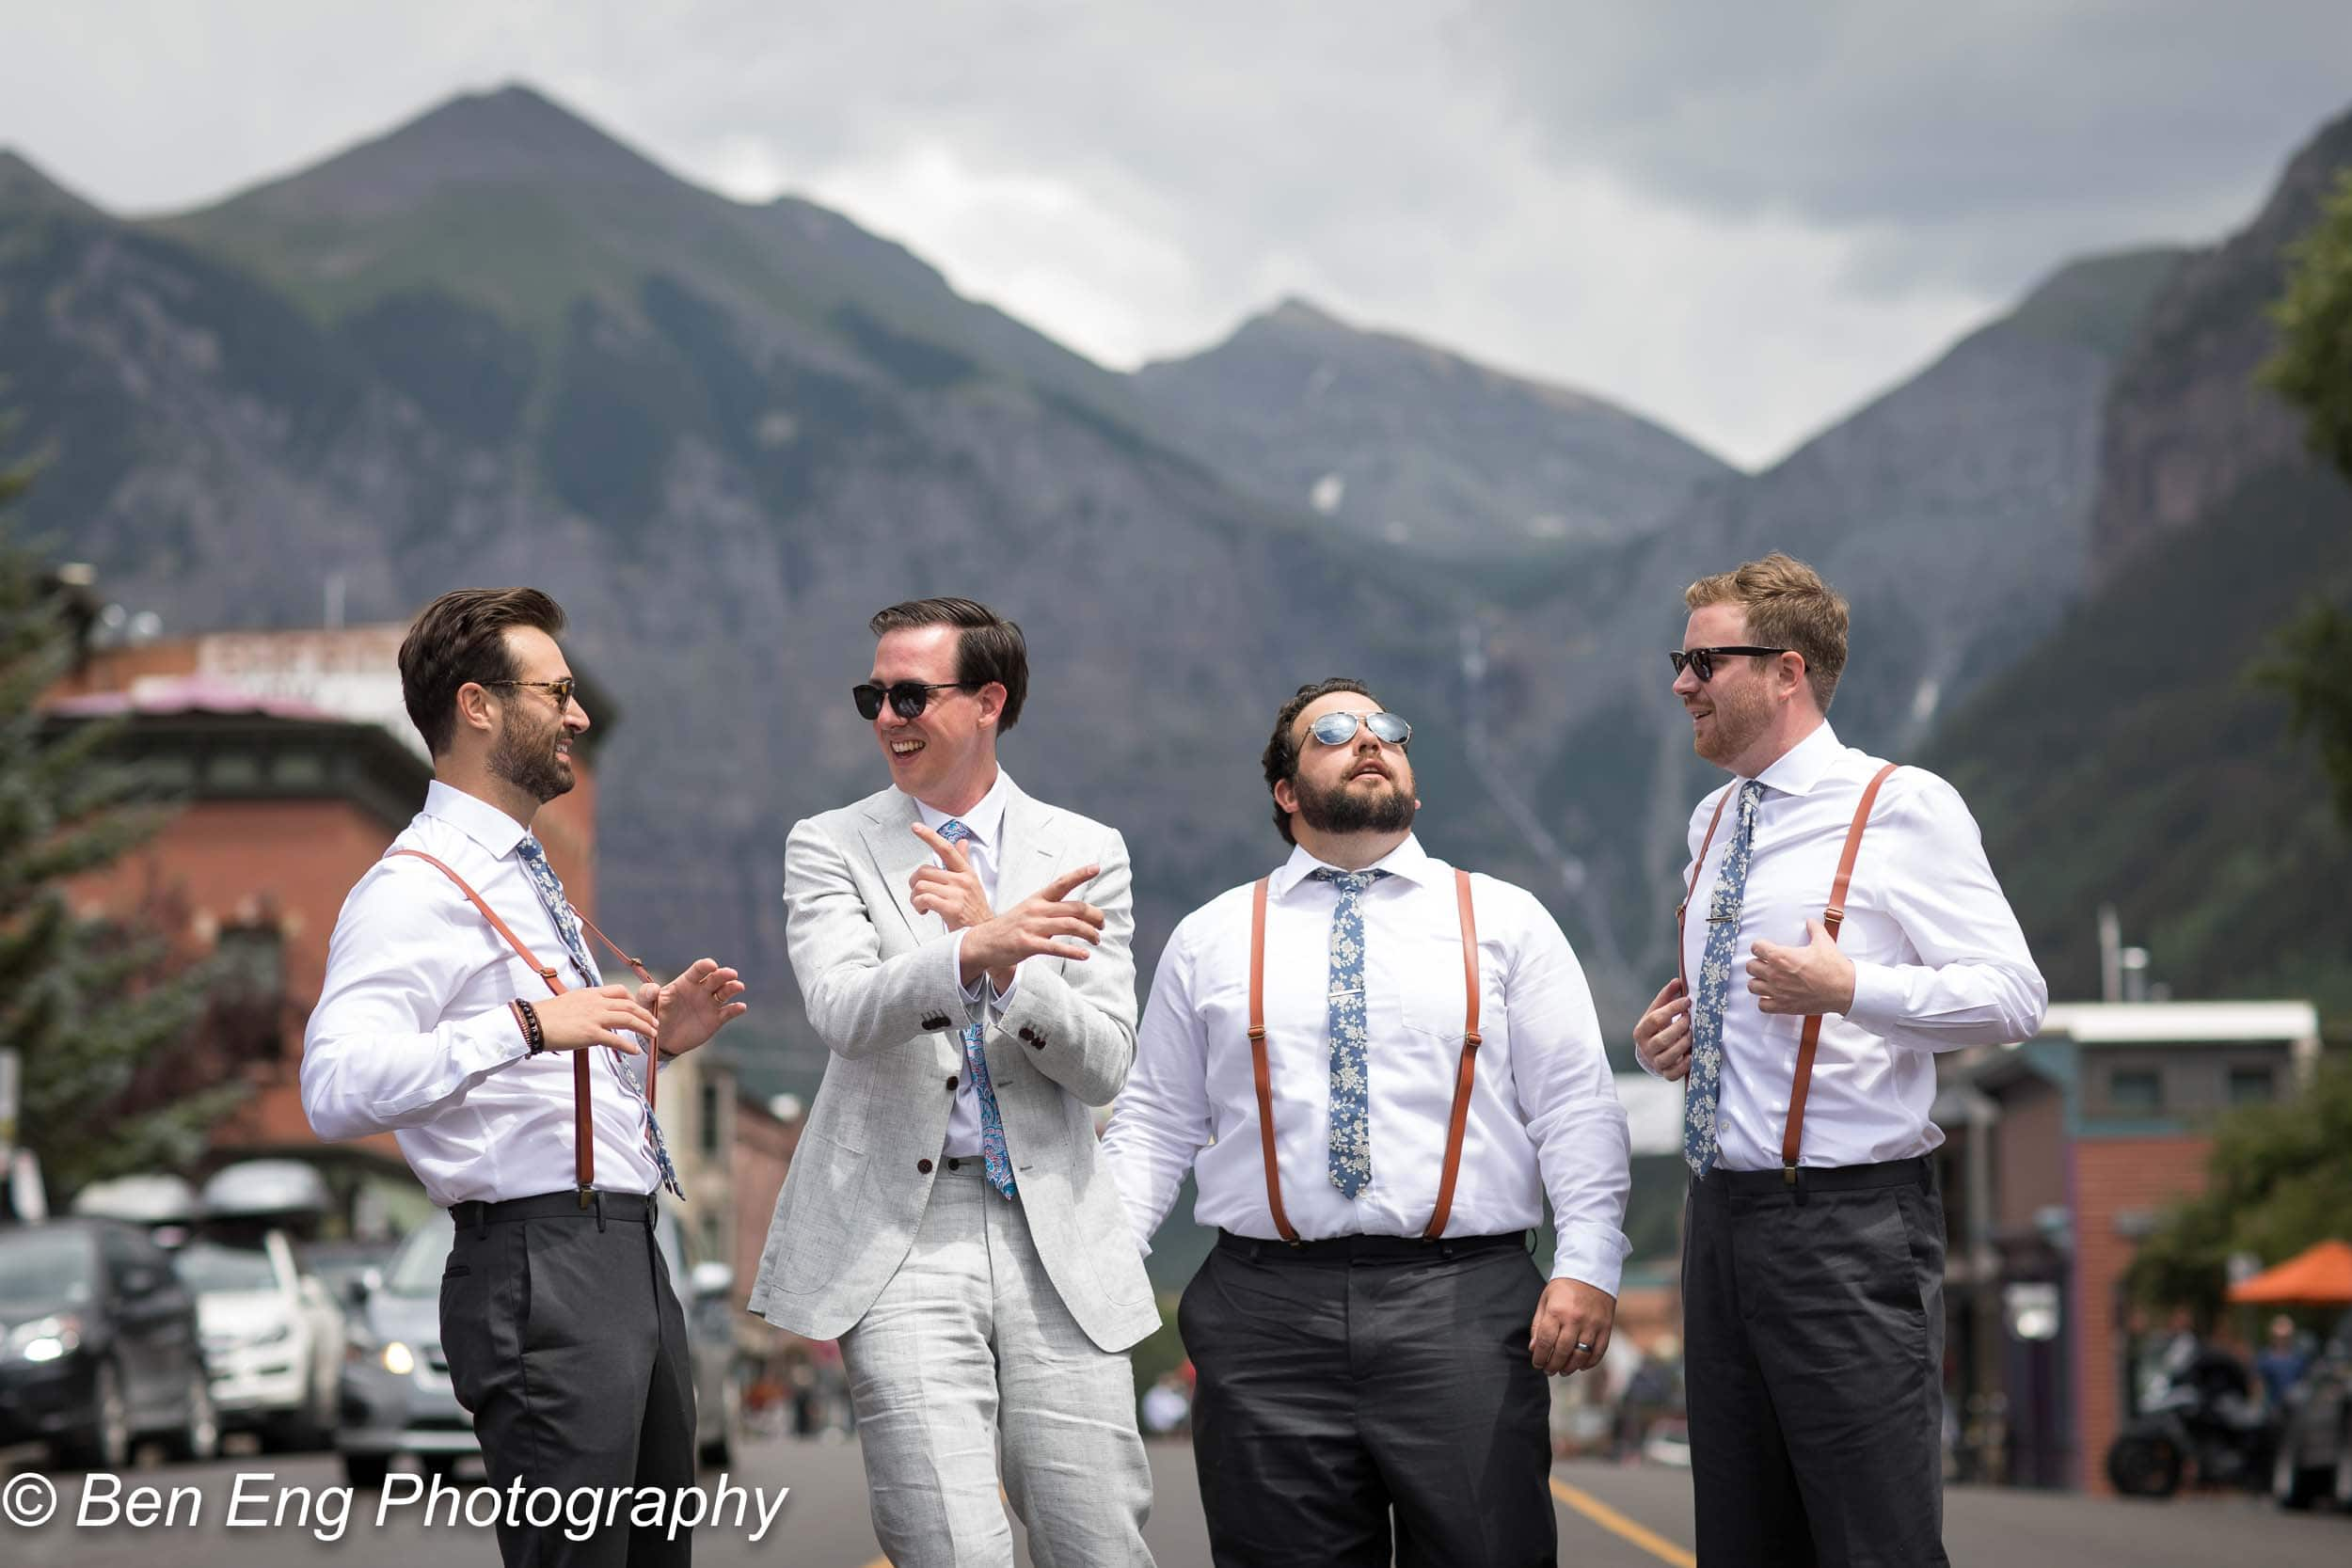 Image by Telluride-based wedding photographer Ben Eng